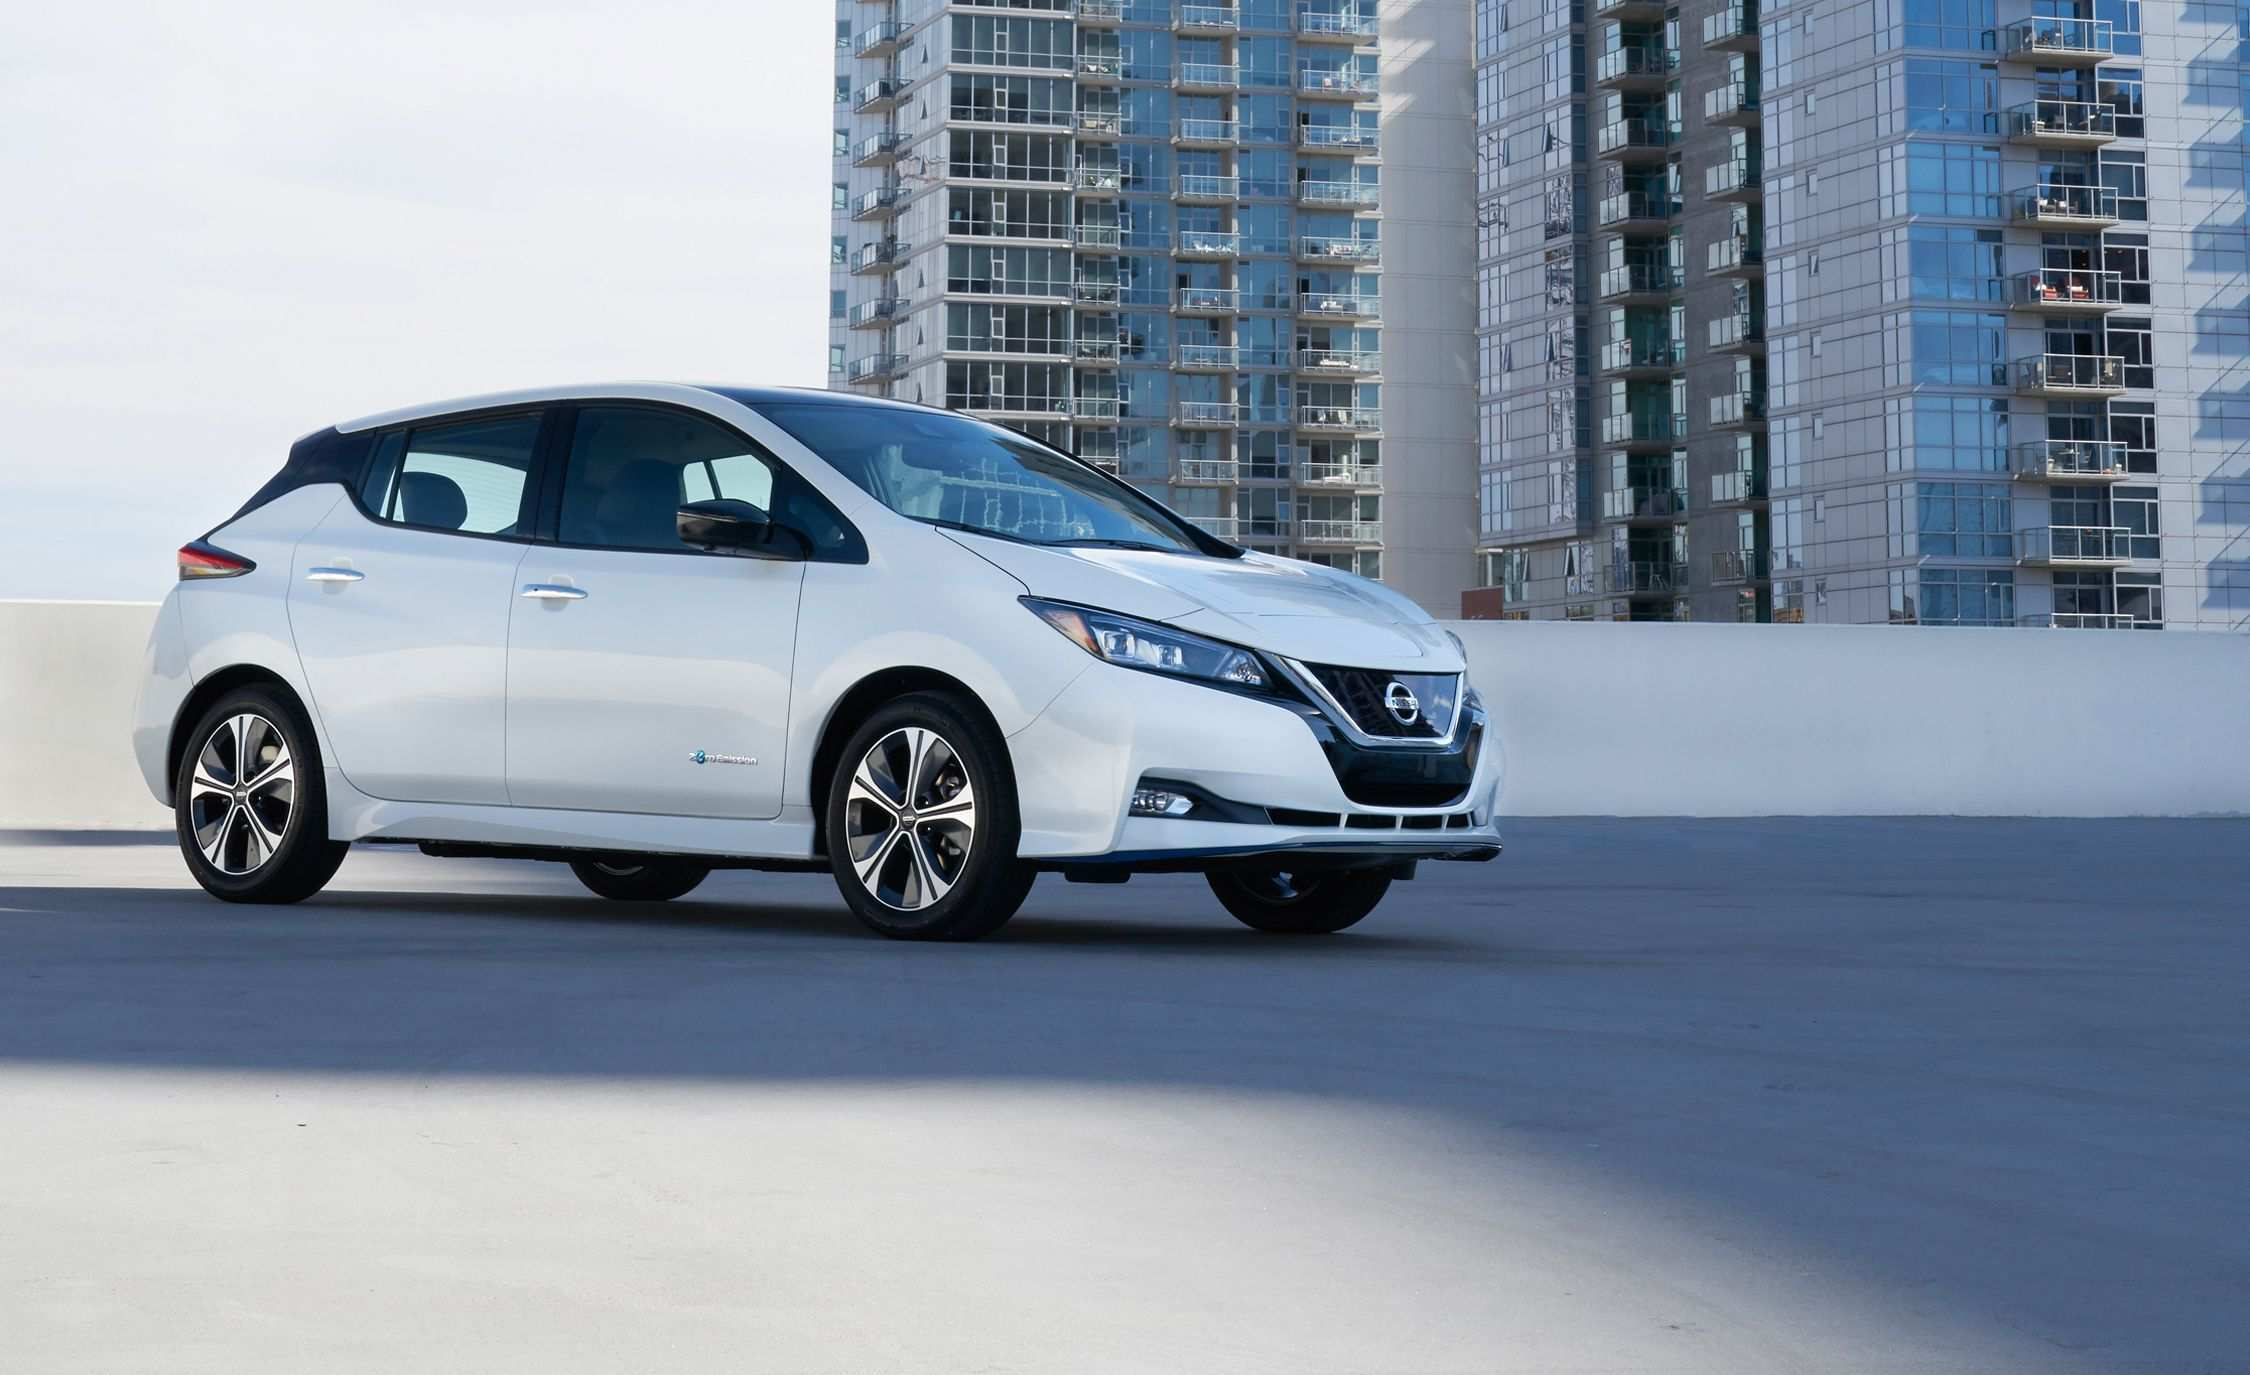 57 Best Review 2019 Nissan Leaf Review Configurations by 2019 Nissan Leaf Review